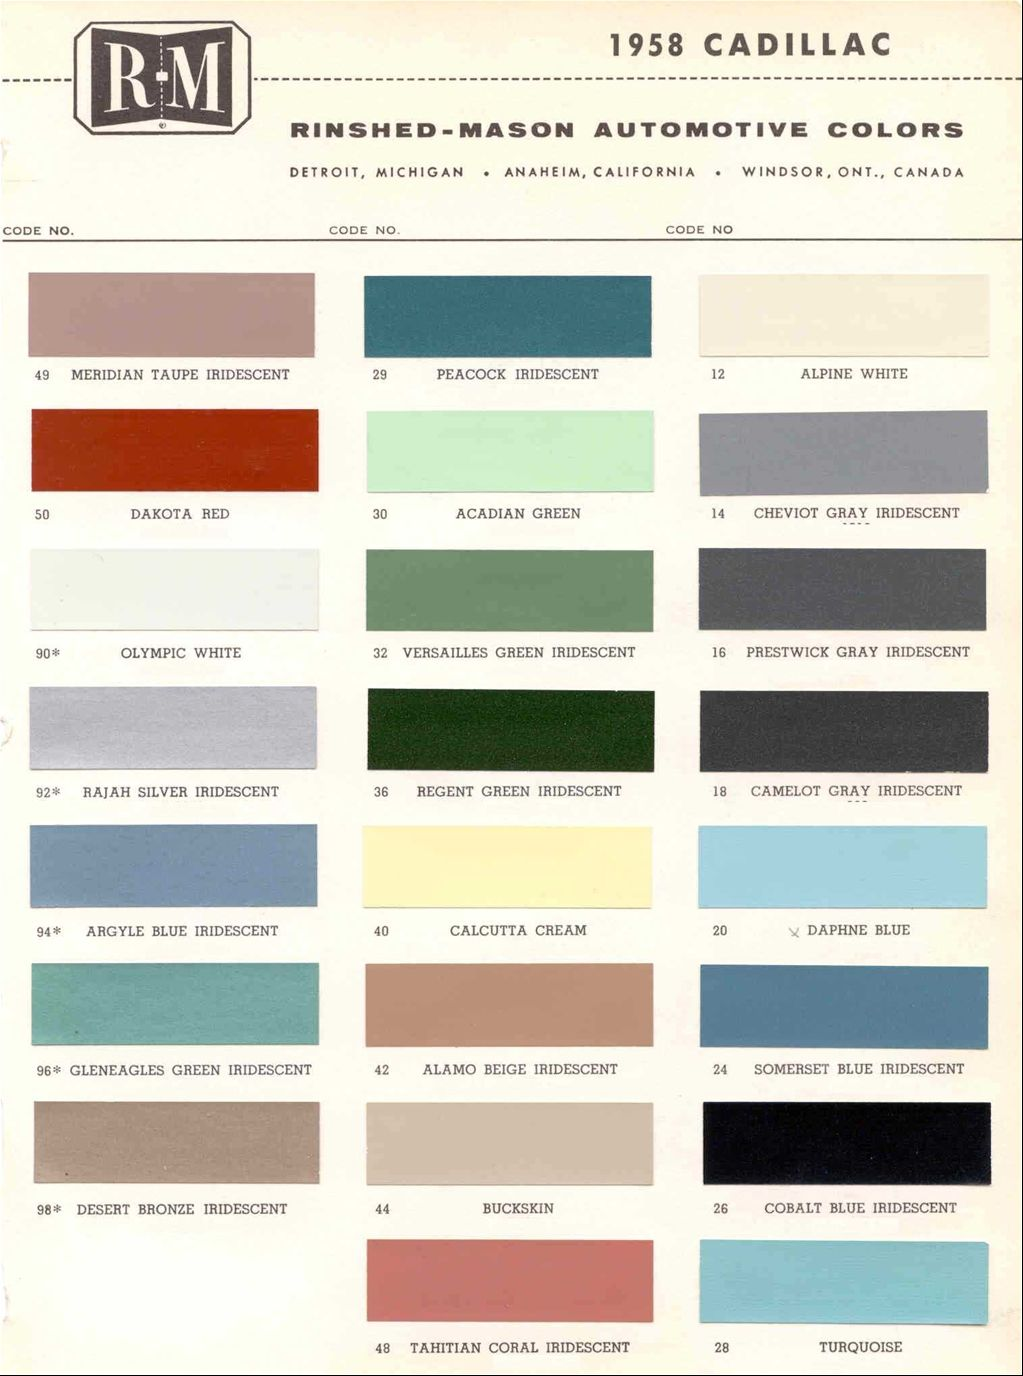 1958 cadillac colors paint pinterest cadillac and cars 1958 cadillac colors nvjuhfo Choice Image